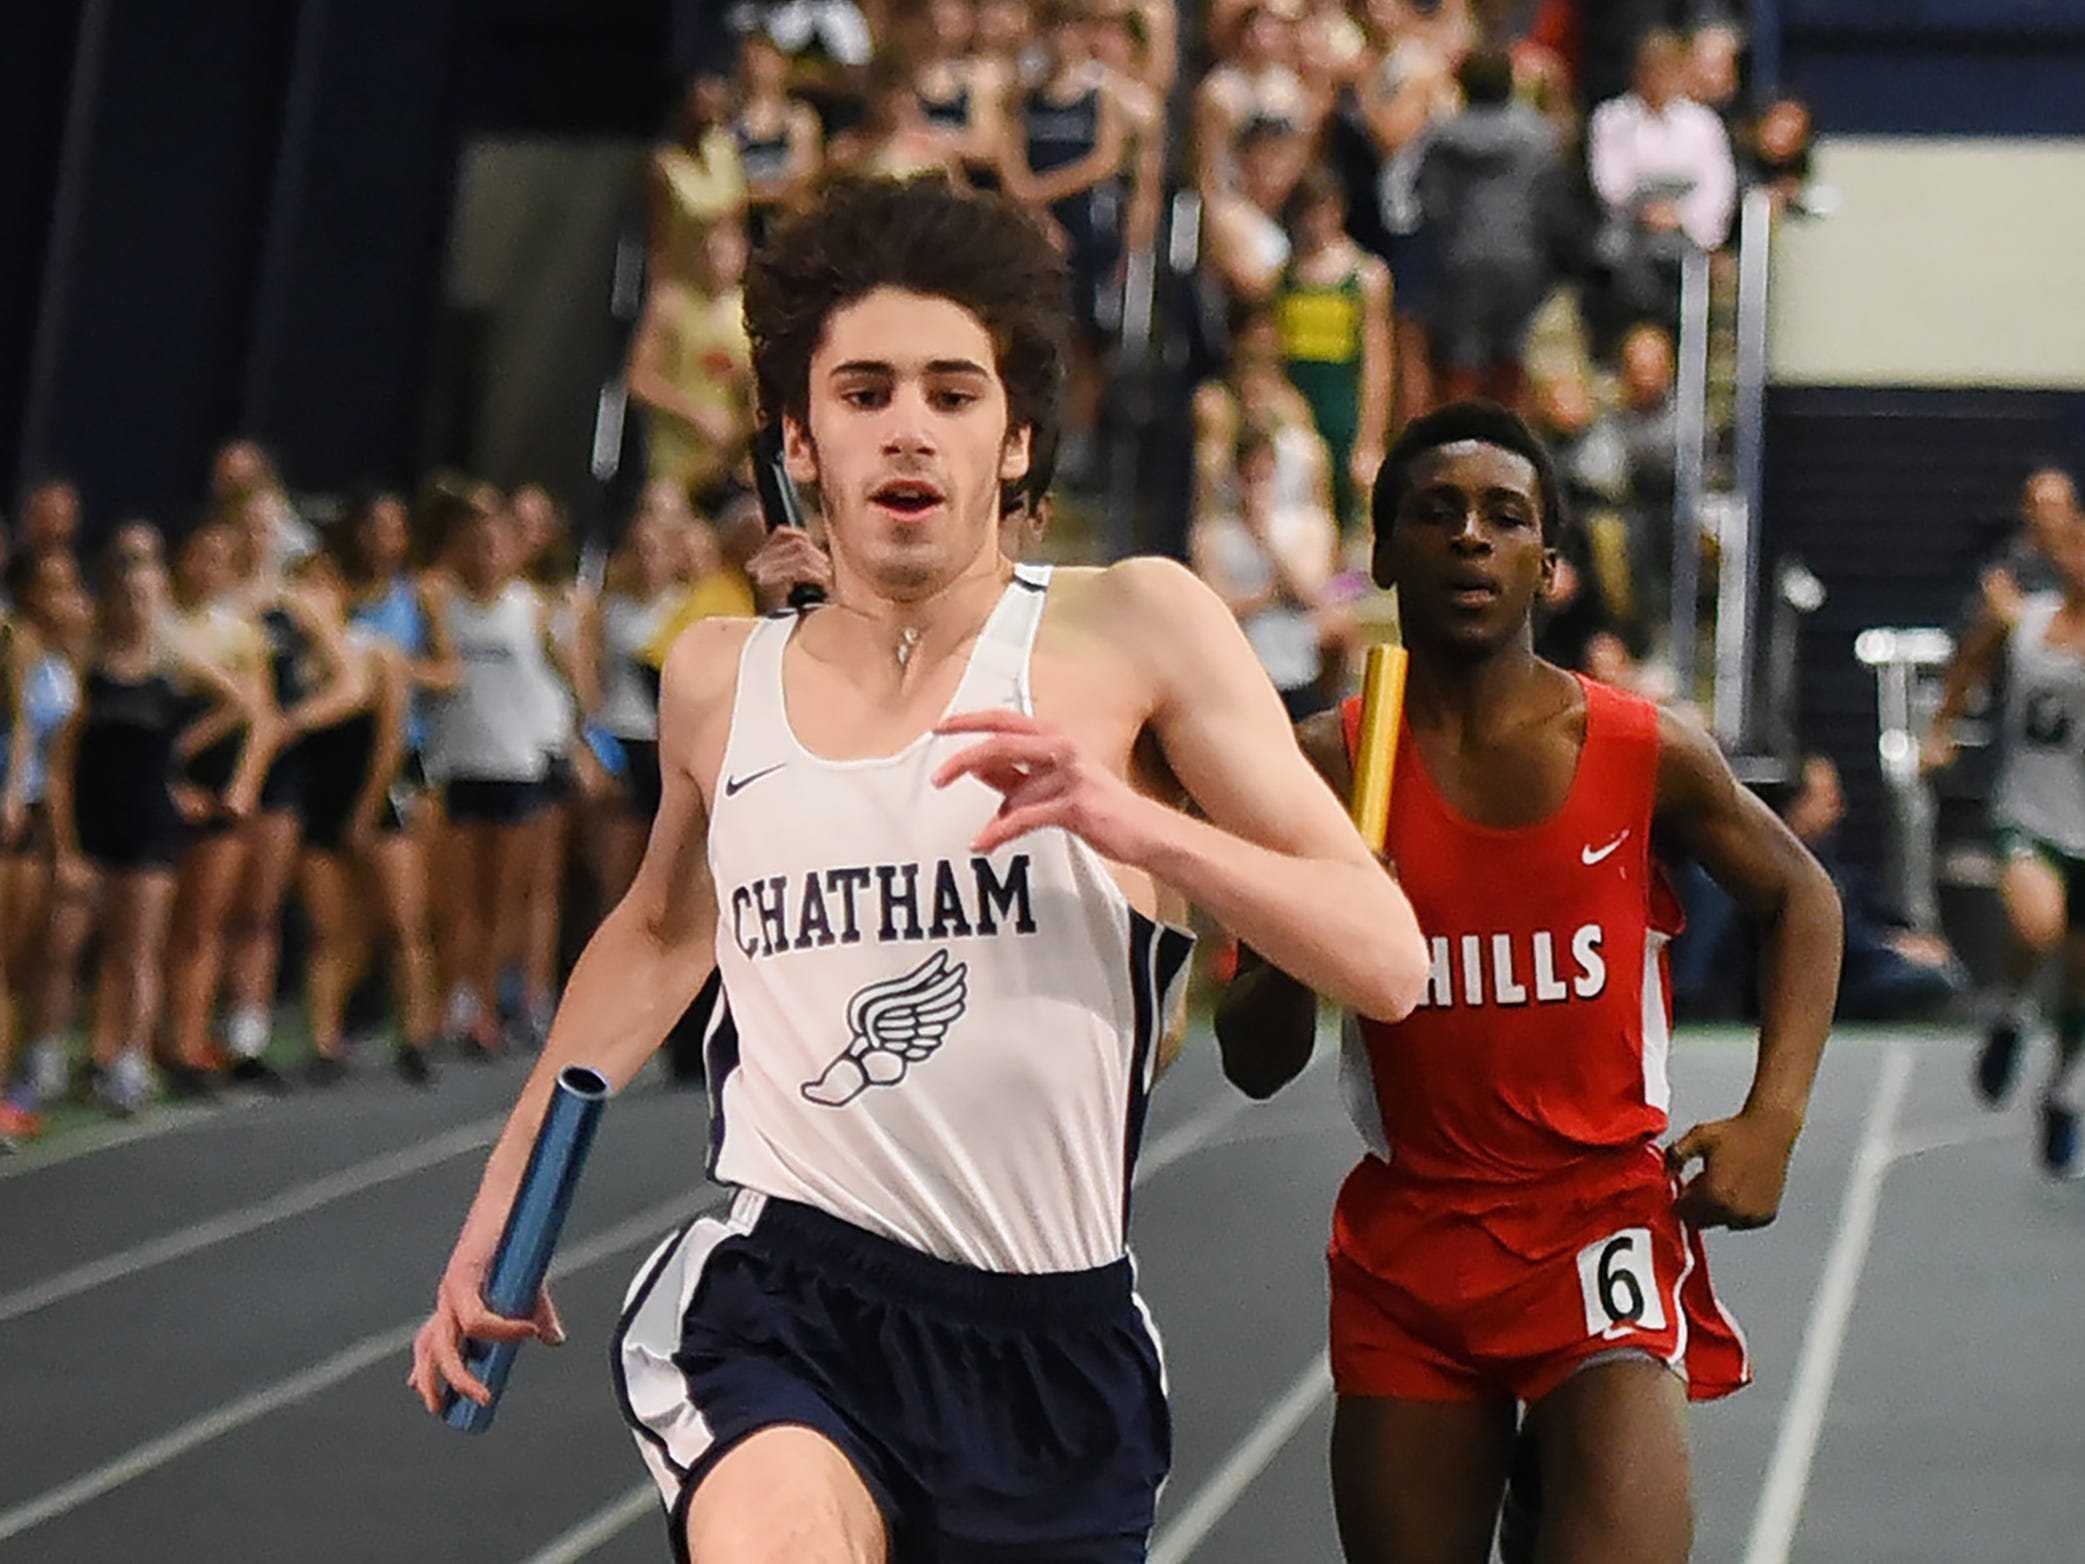 Sam Viola of Chatham crosses the line first in a heat of the 4x200 at Morris County Relays at Drew University in Madison on 01/09/19.